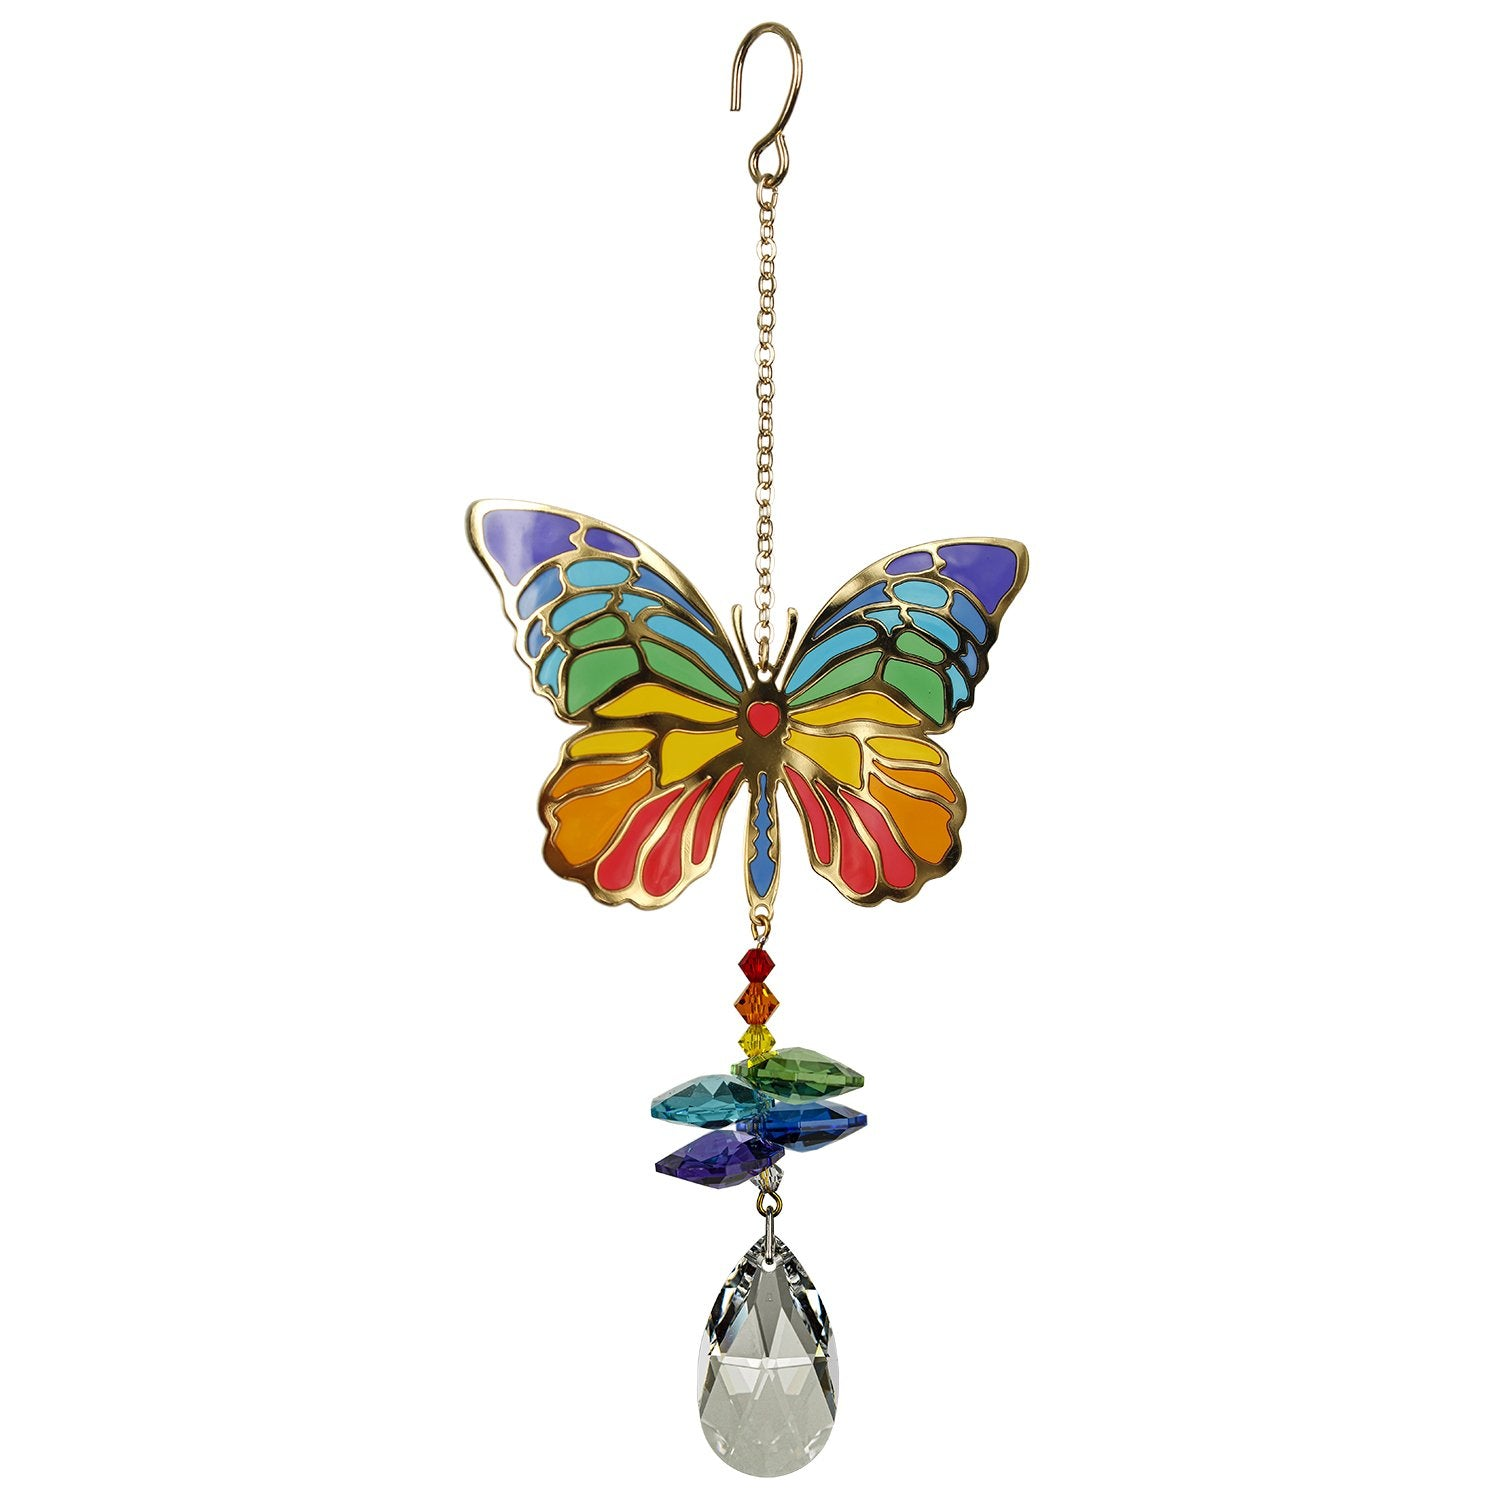 Crystal Wonders - Butterfly full product image